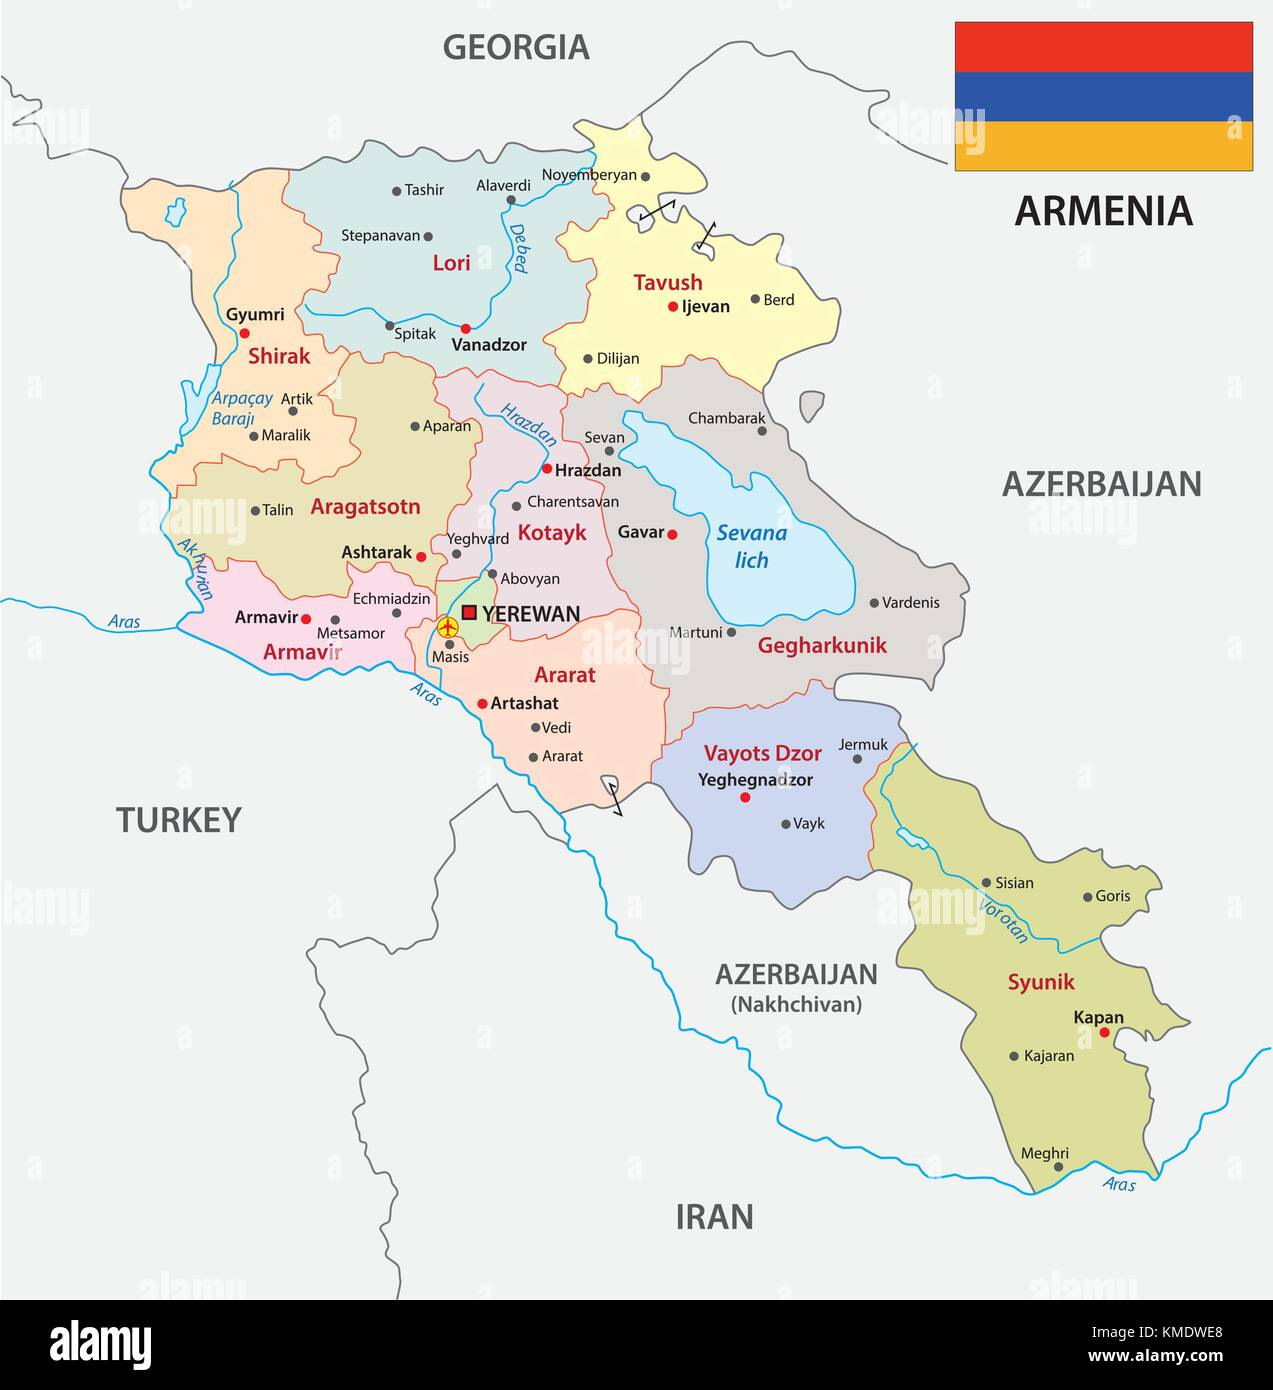 armenia administrative and political vector map with flag - Stock Image